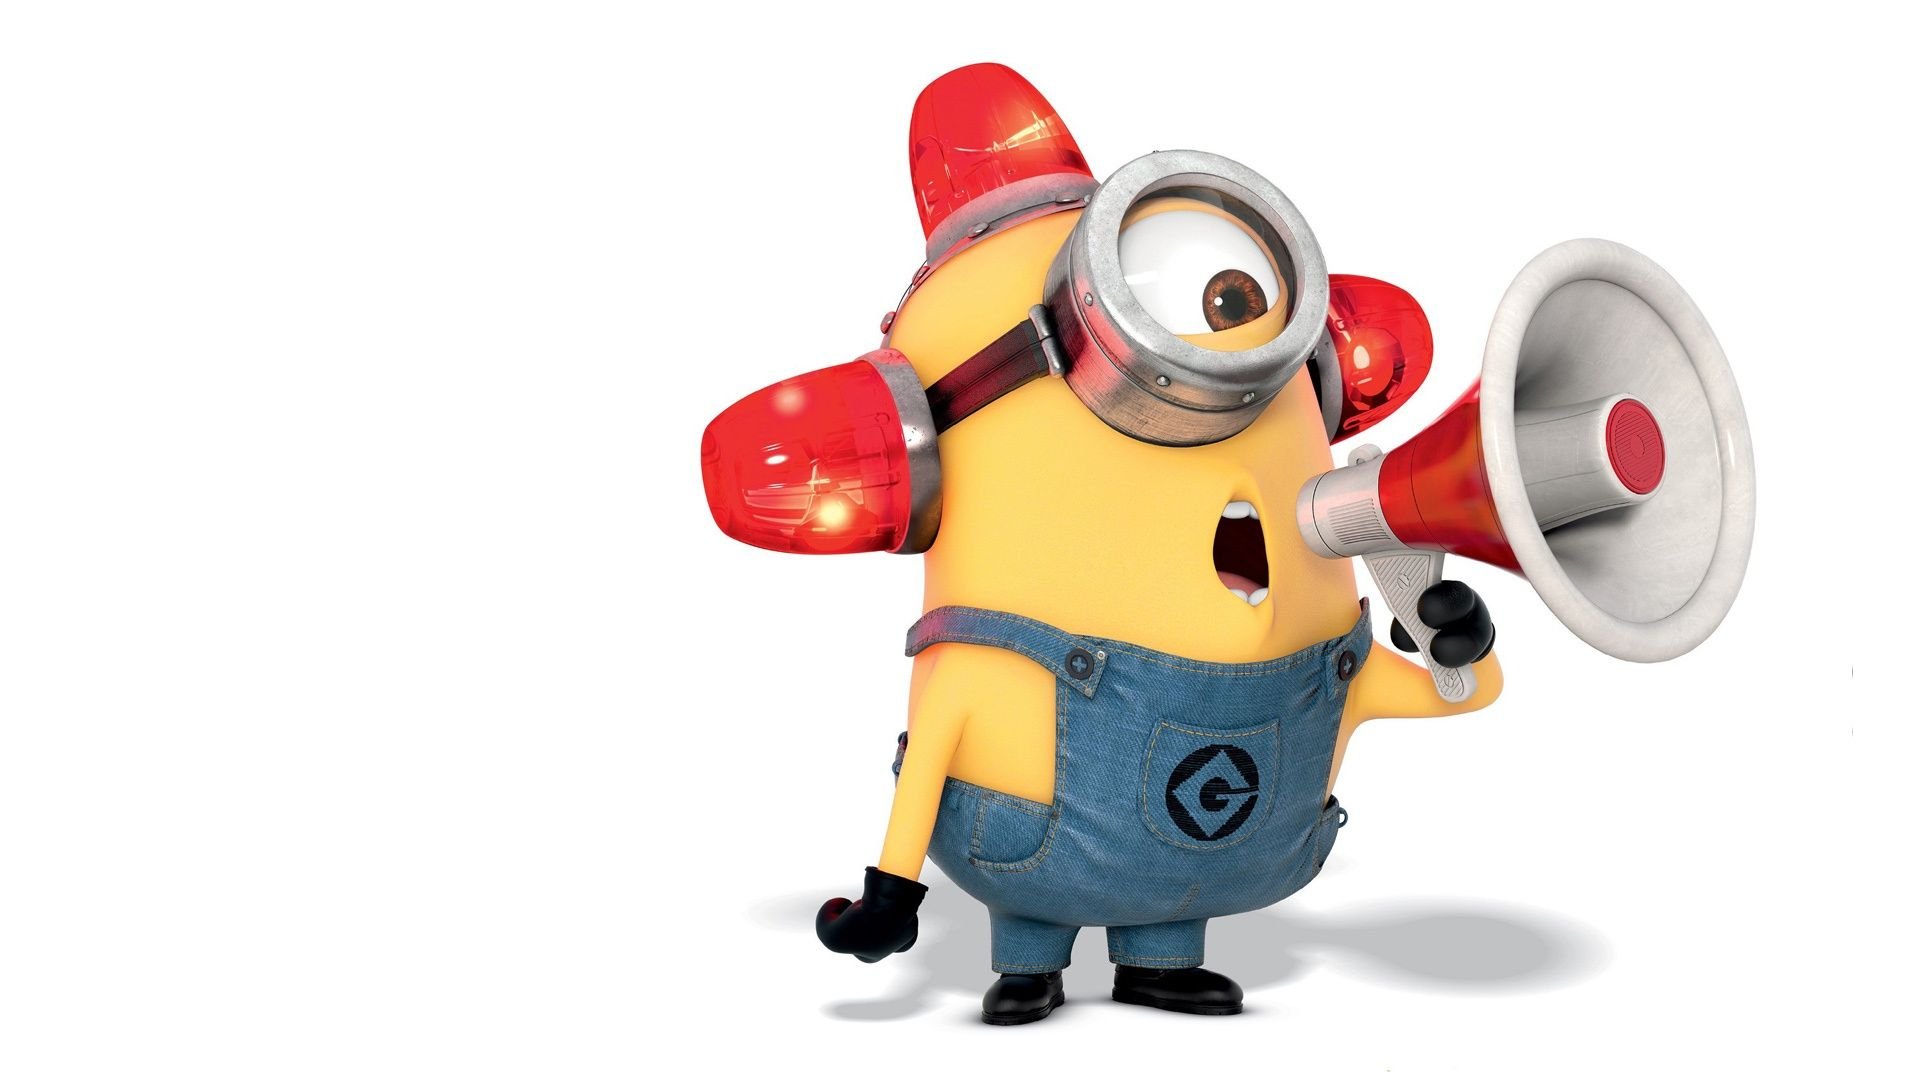 despicable me | minion carl in despicable me 2 hd wallpaper - ihd